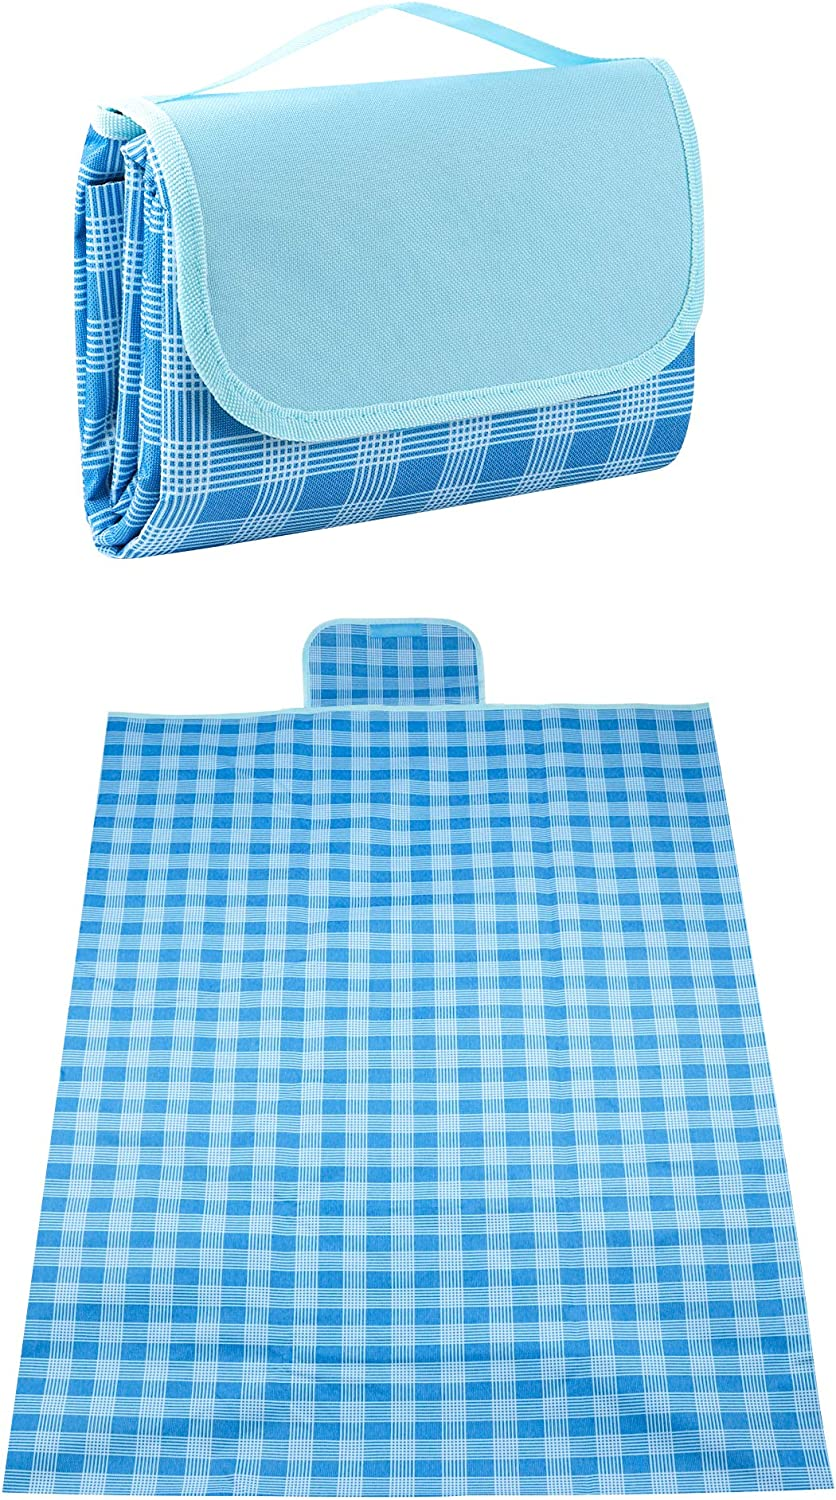 Blue Waterproof Foldable Picnic Blankets for Outdoor Park Travel Camping Hiking Garden 59x79 Actume Picnic Mat with Handle